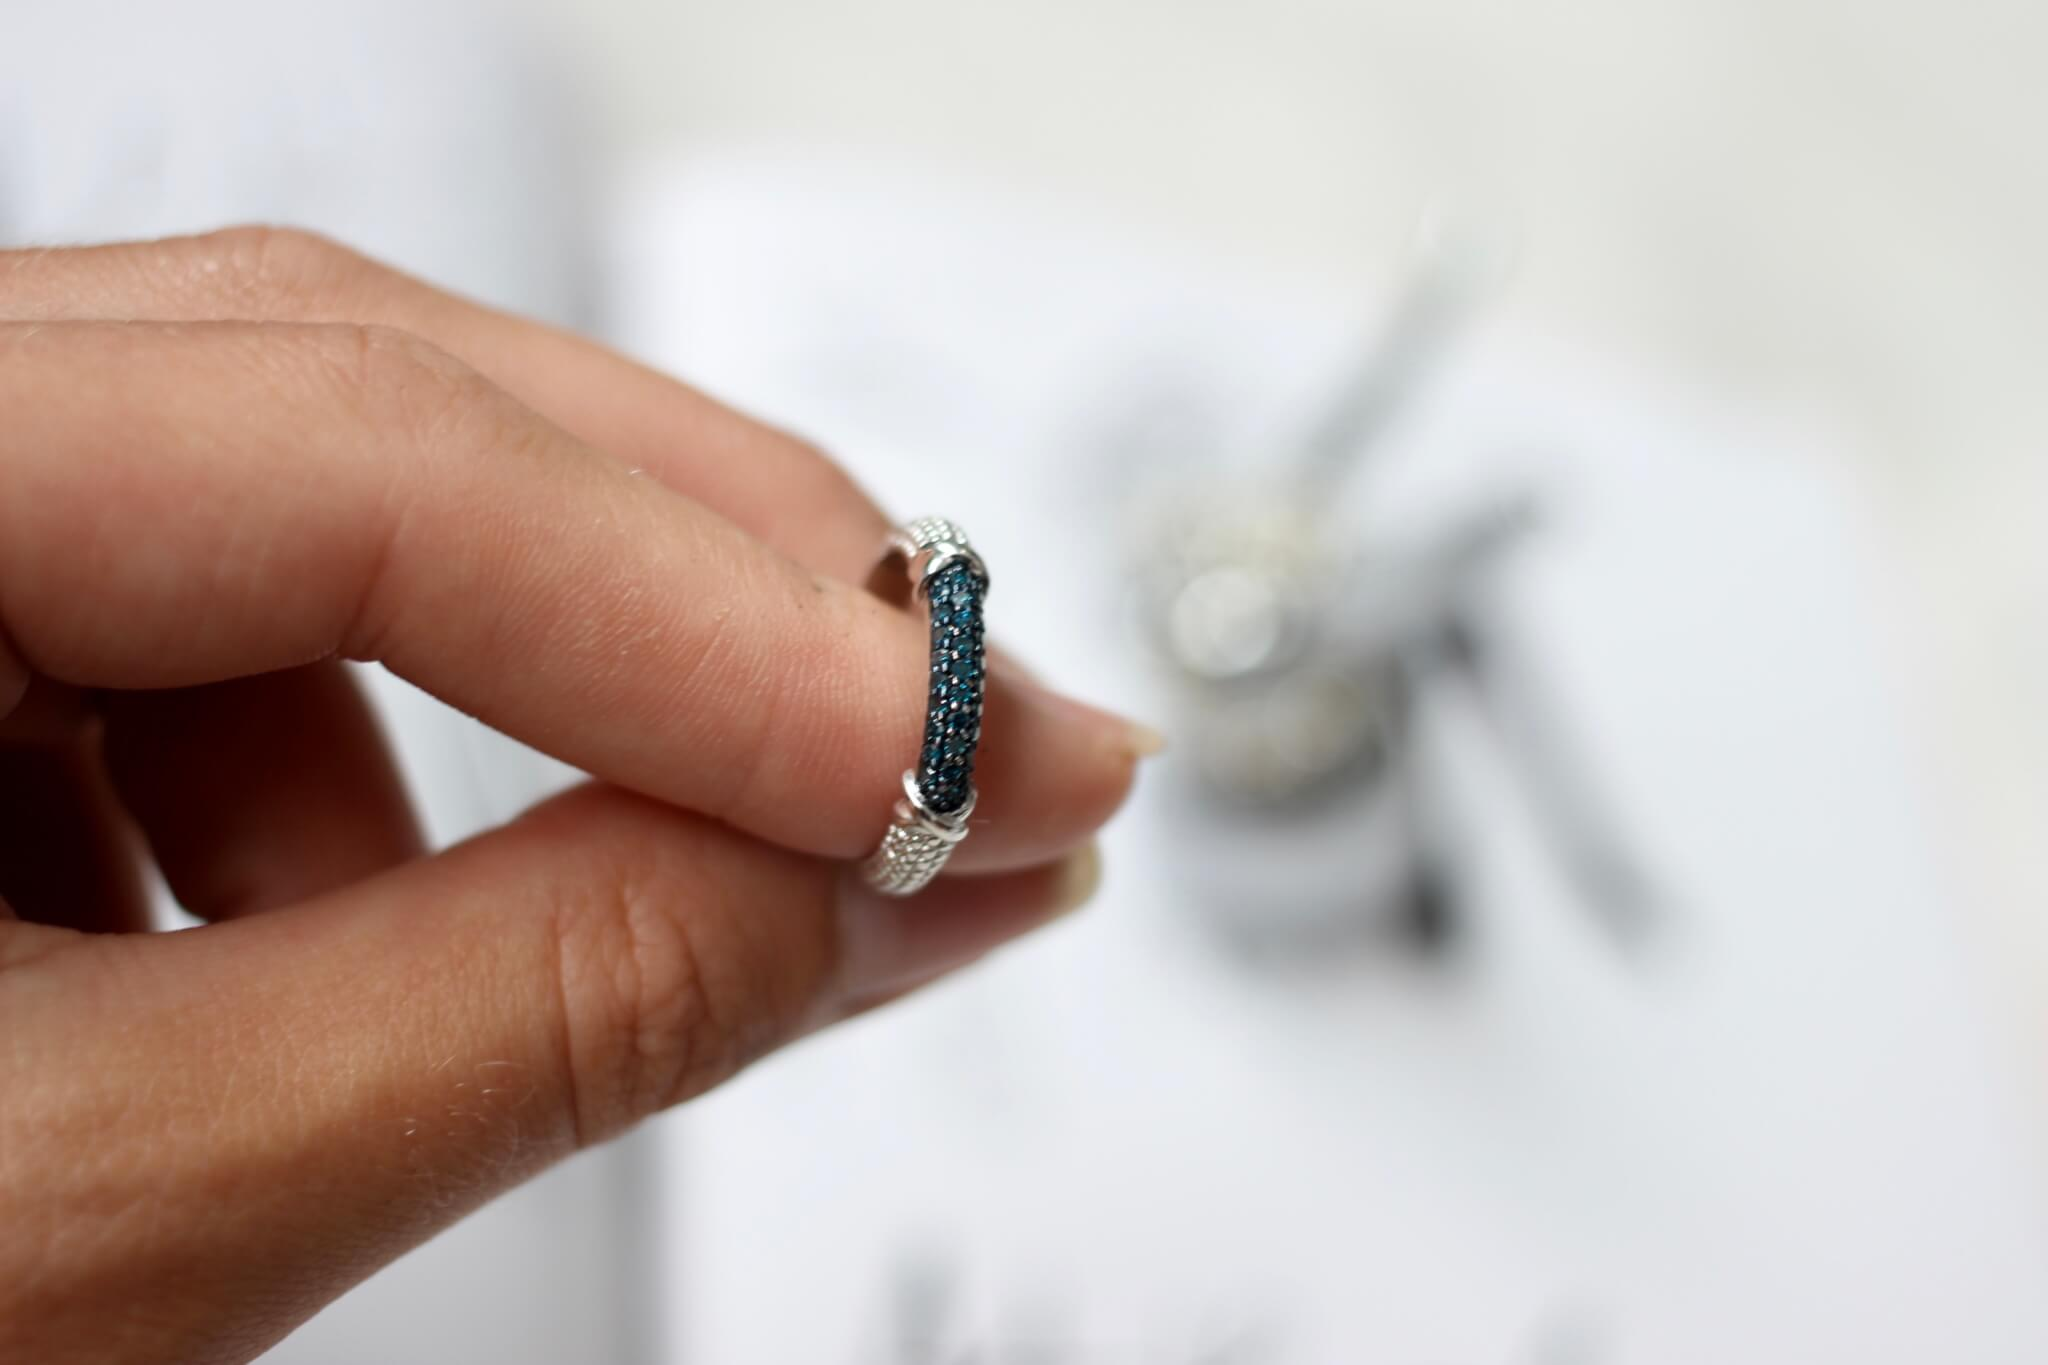 Gemporia Blue Diamond Ring - Fake Nothing campaign